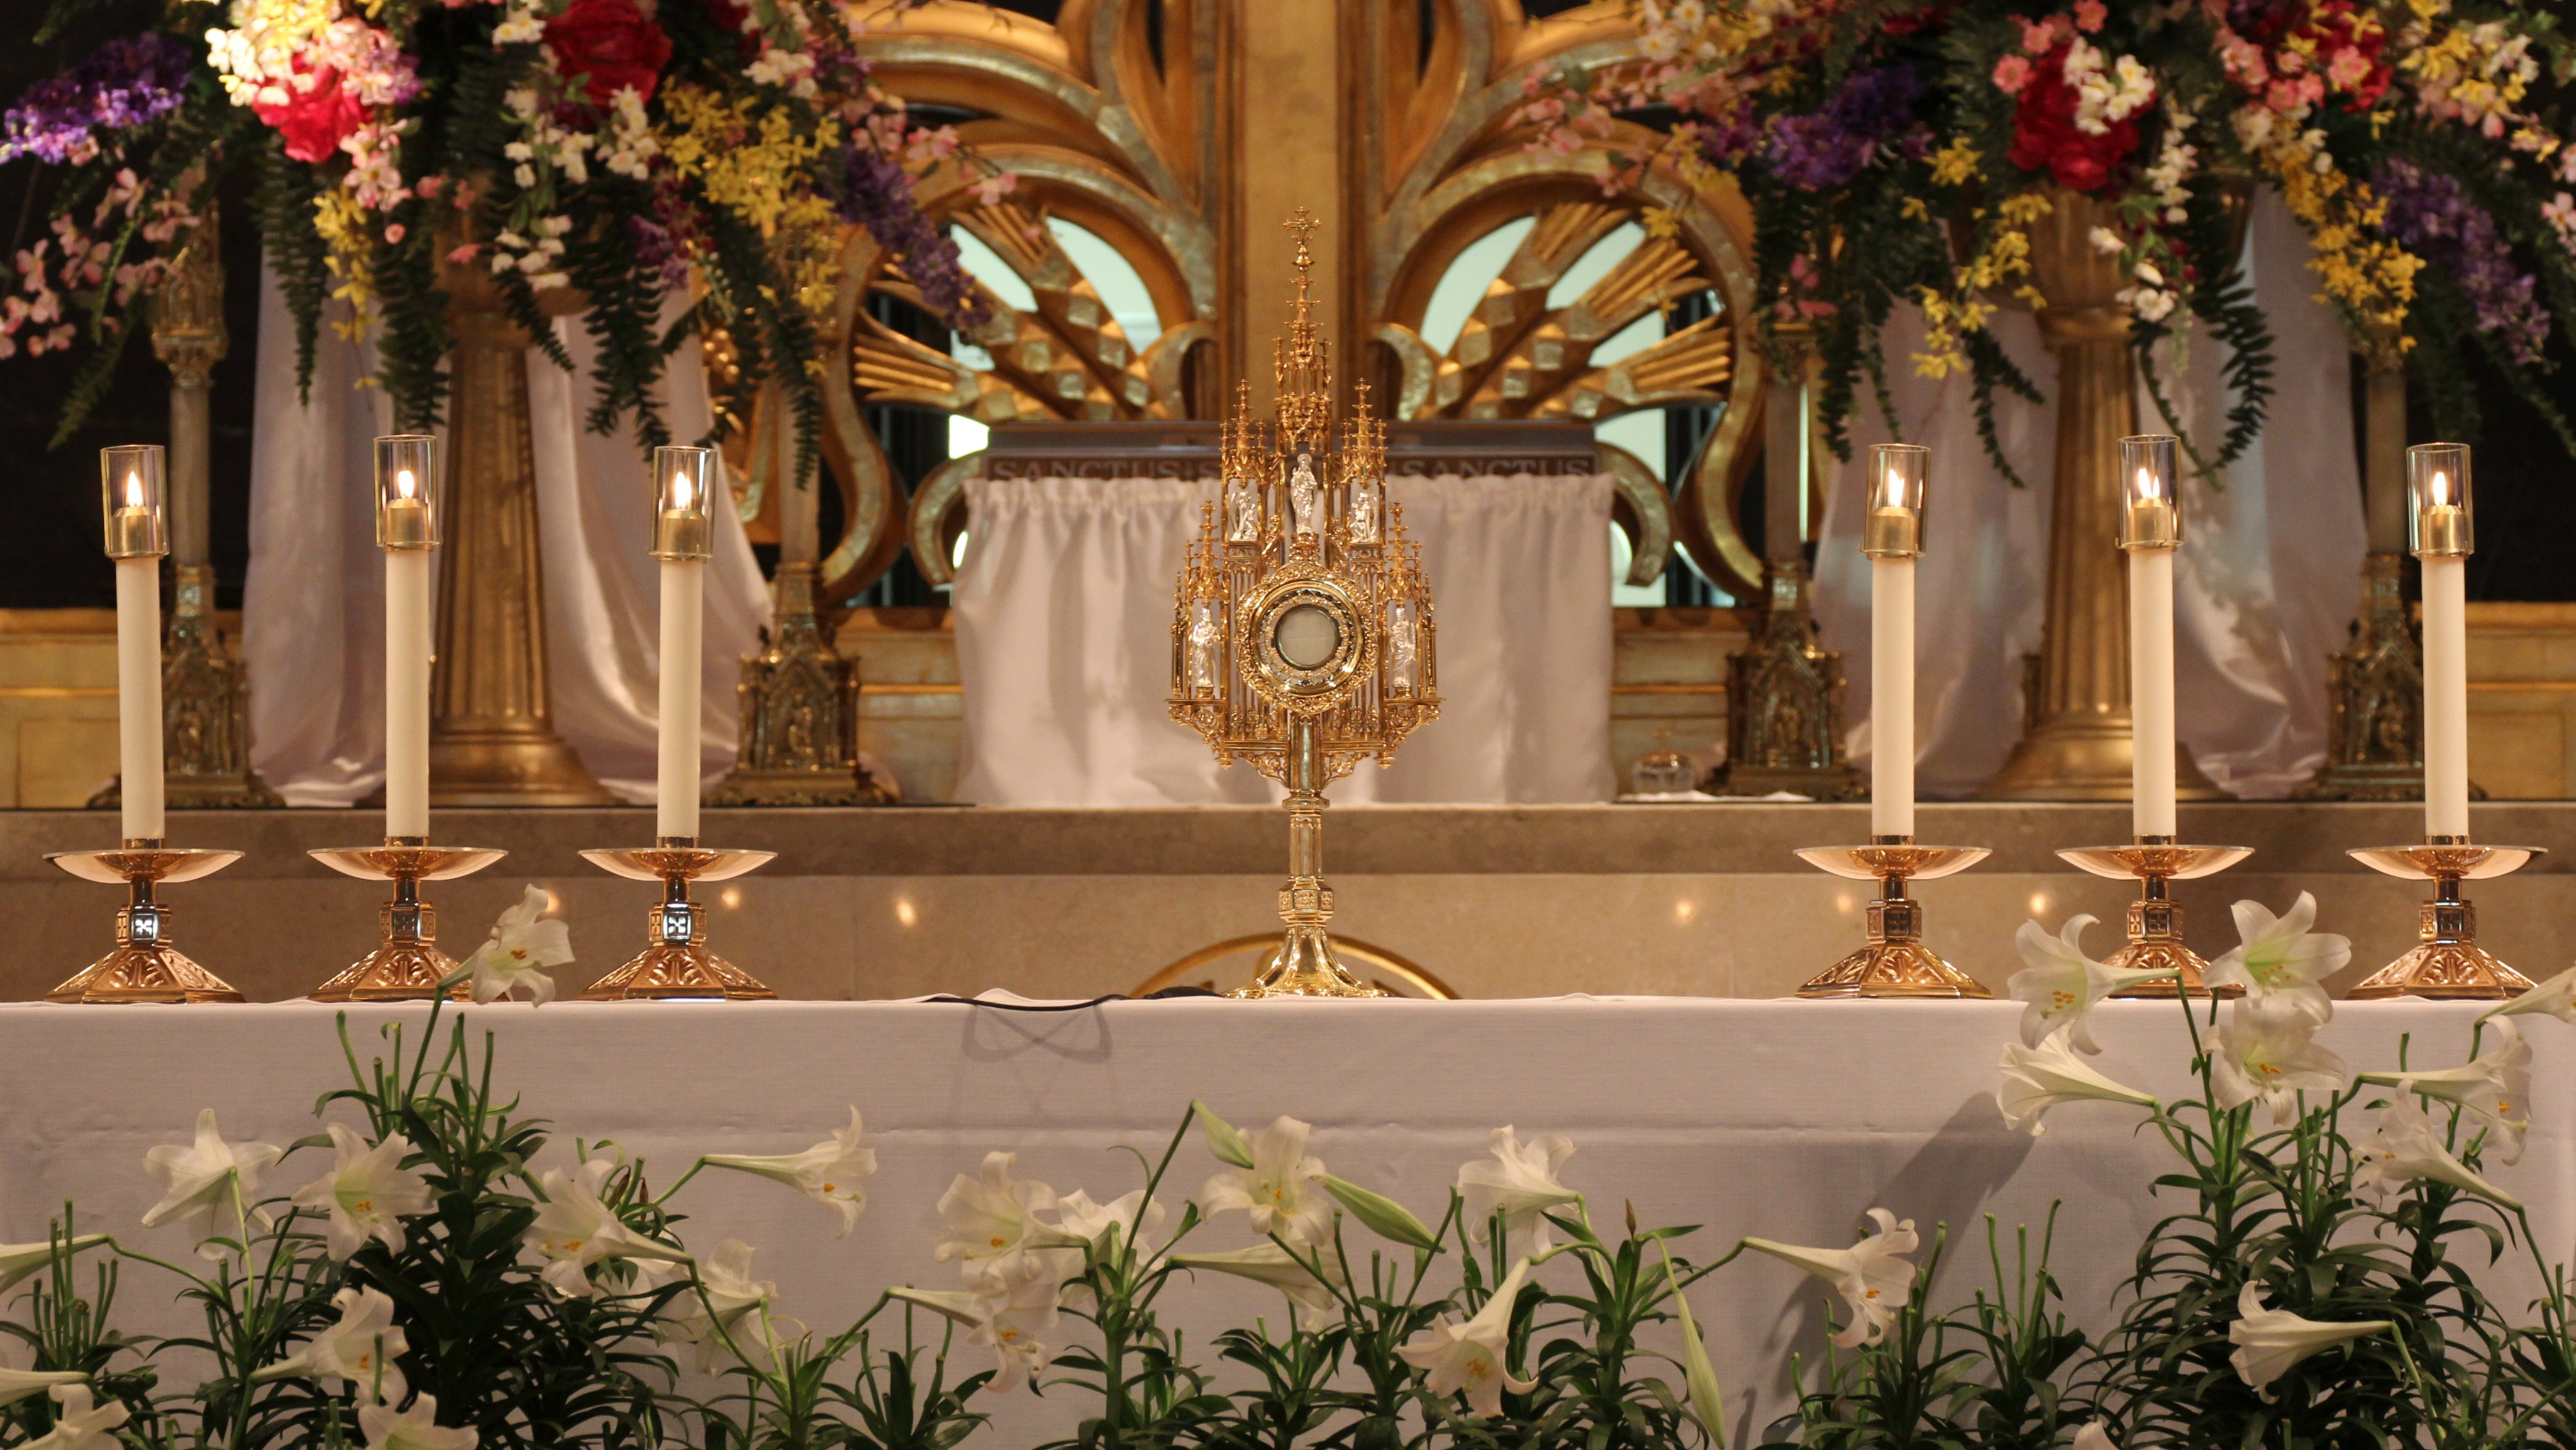 Wallpaper of the Blessed Sacrament